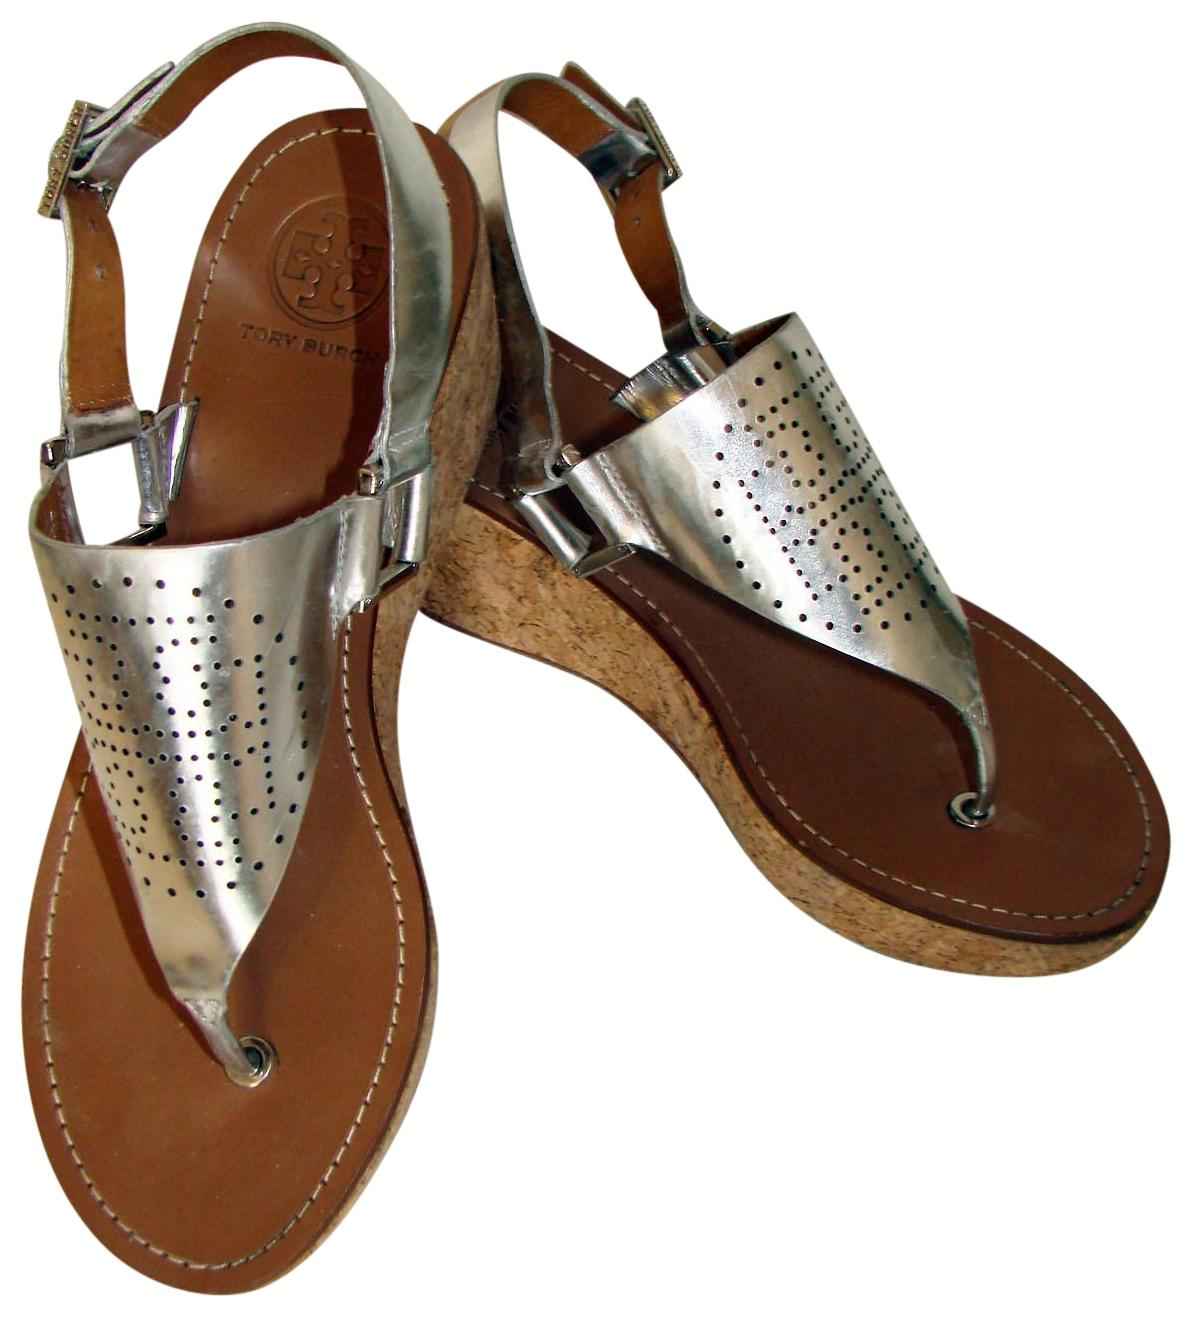 Tory US Burch Silver T Perforated Logo Sandals Wedges Size US Tory 9 Regular (M, B) 9535c7